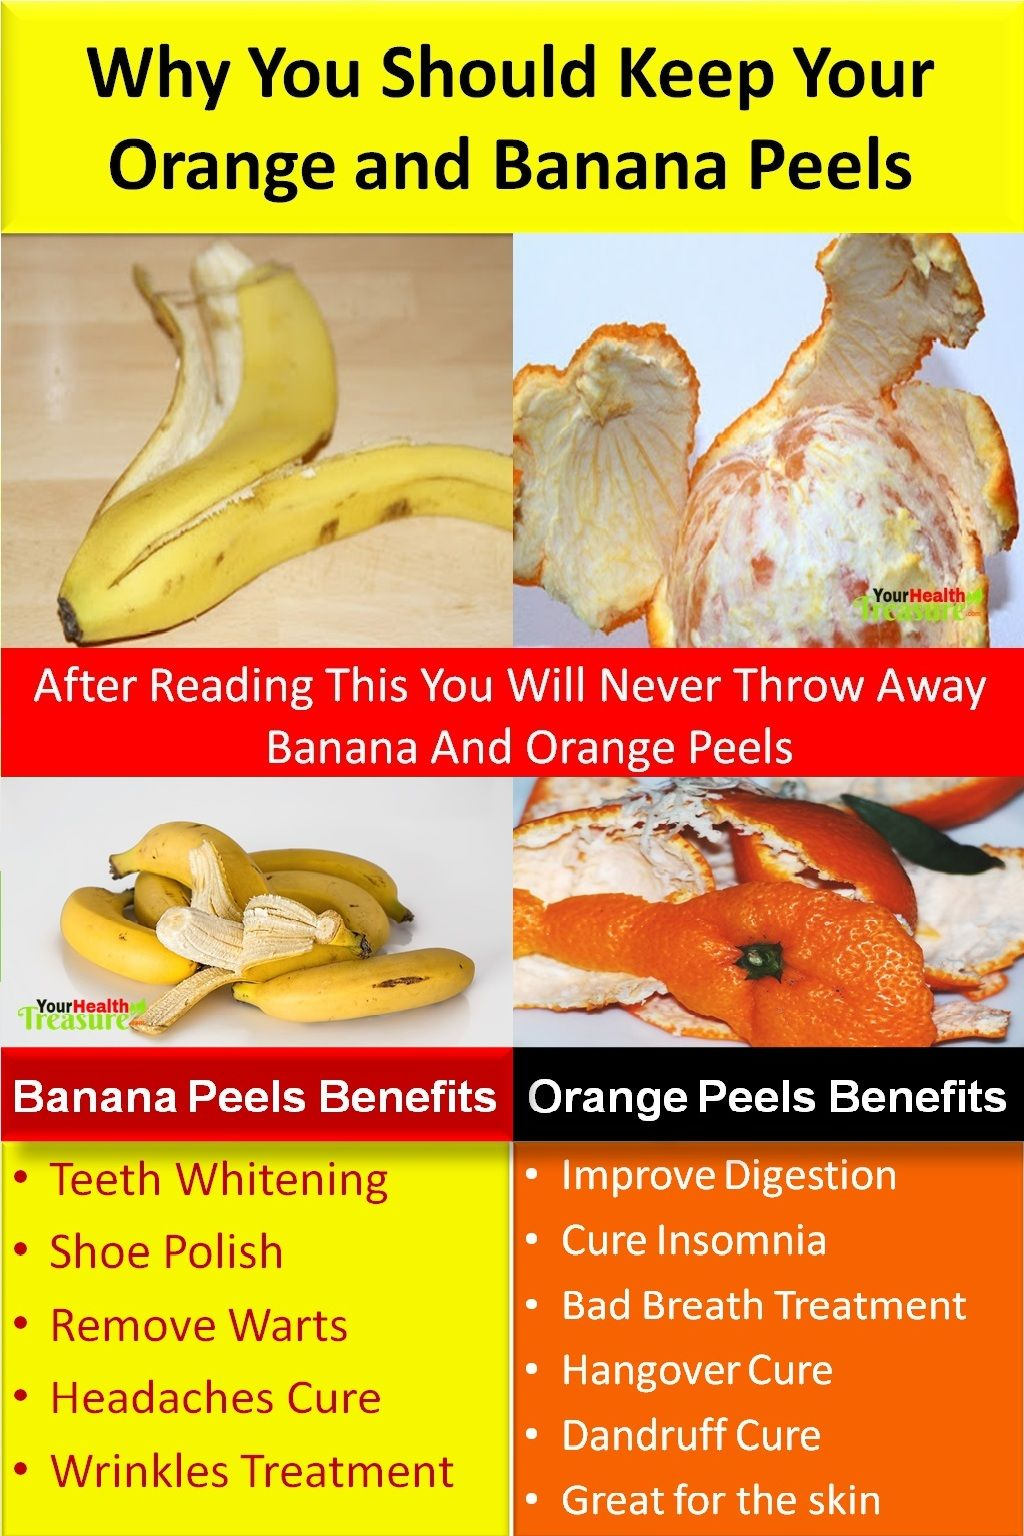 ed7caf9208886 Benefits of Orange and Banana Peels  Why You Should Keep Your Orange and Banana  Peels